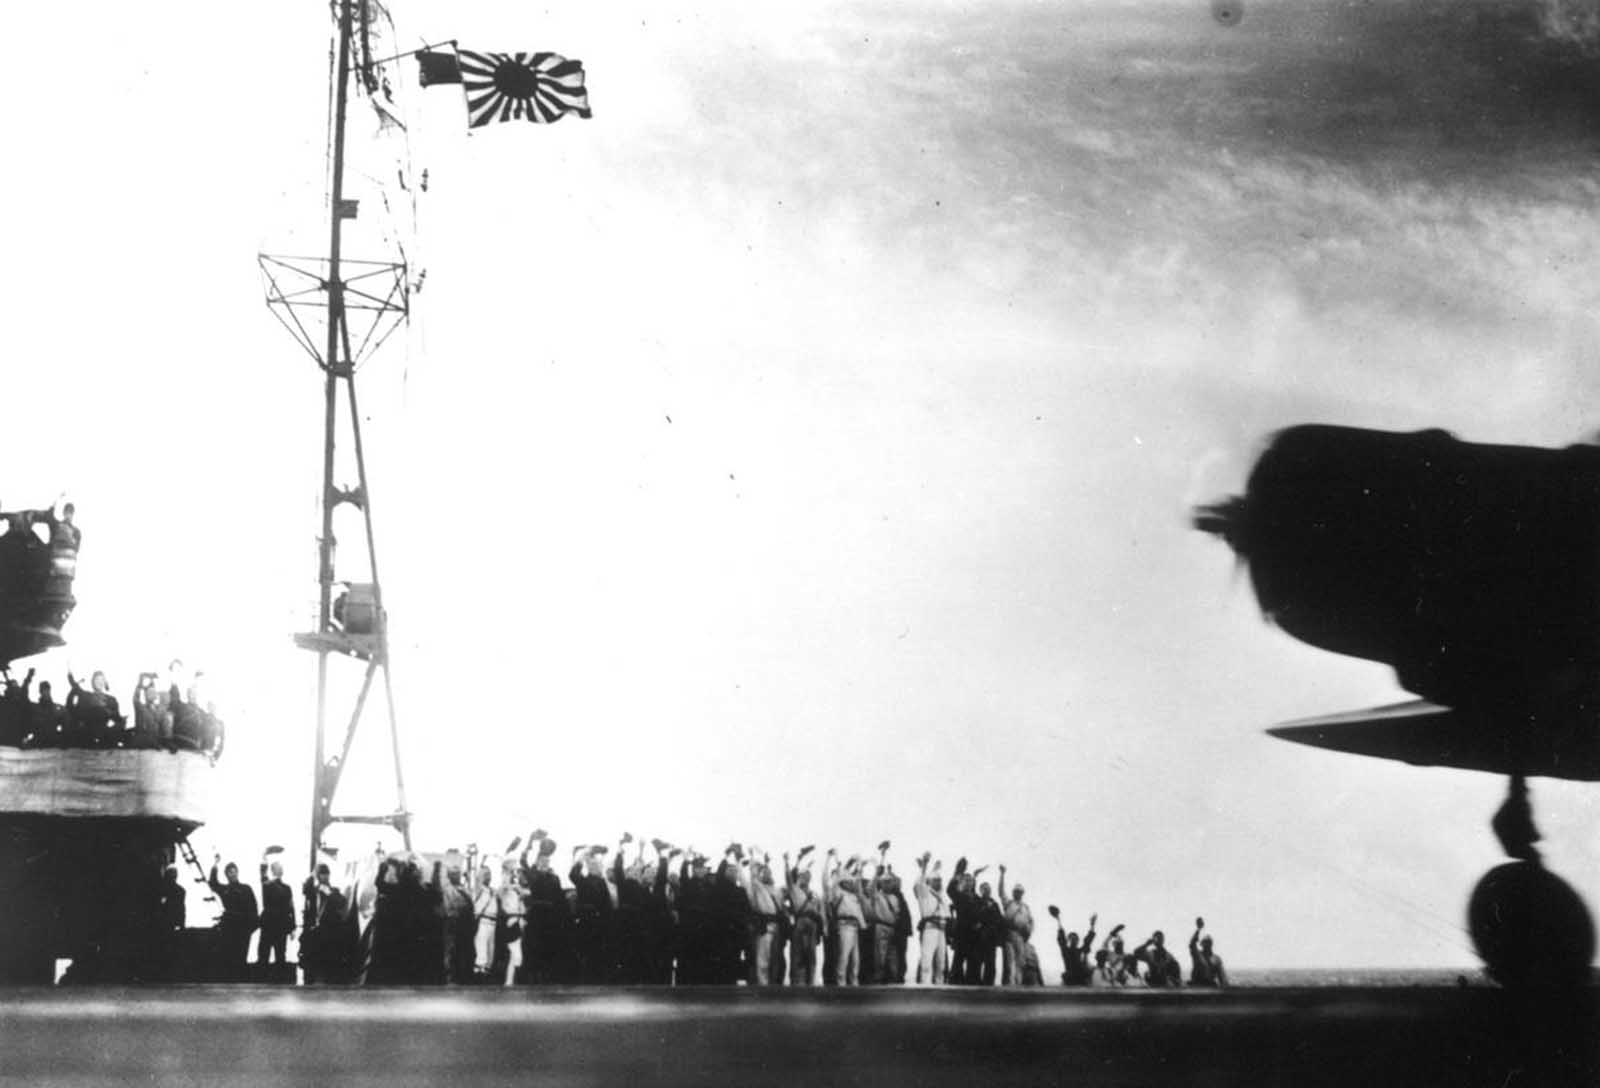 This photograph, from a Japanese film later captured by American forces, was taken aboard the Japanese aircraft carrier Zuikaku, just as a Nakajima